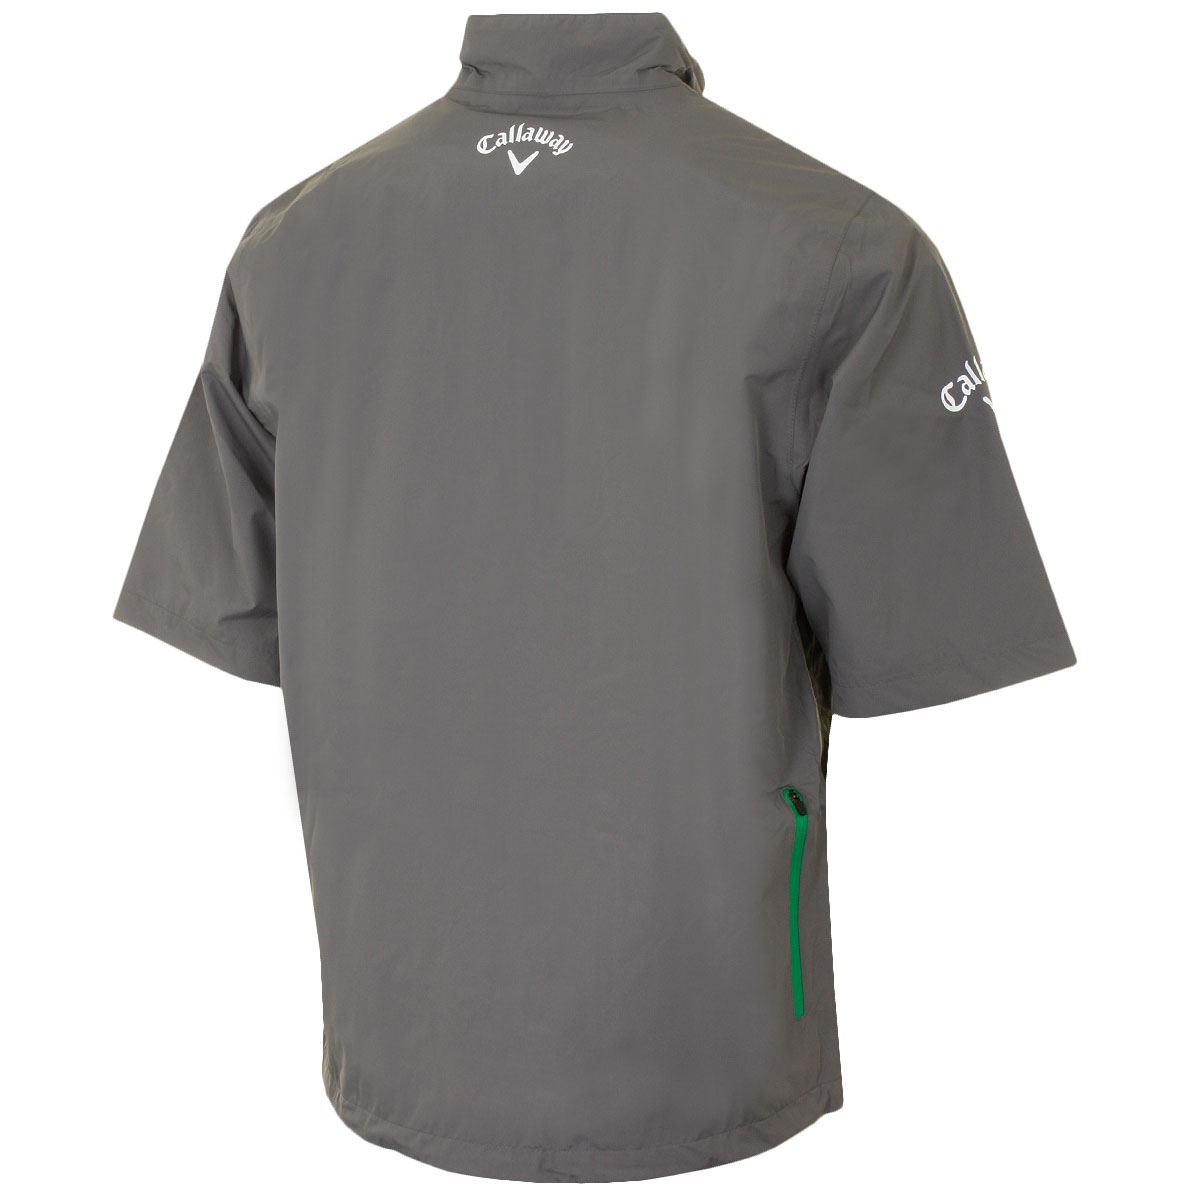 Callaway Golf Mens Half Sleeve Waterproof 1/4 Zip Playing Top Rain ...